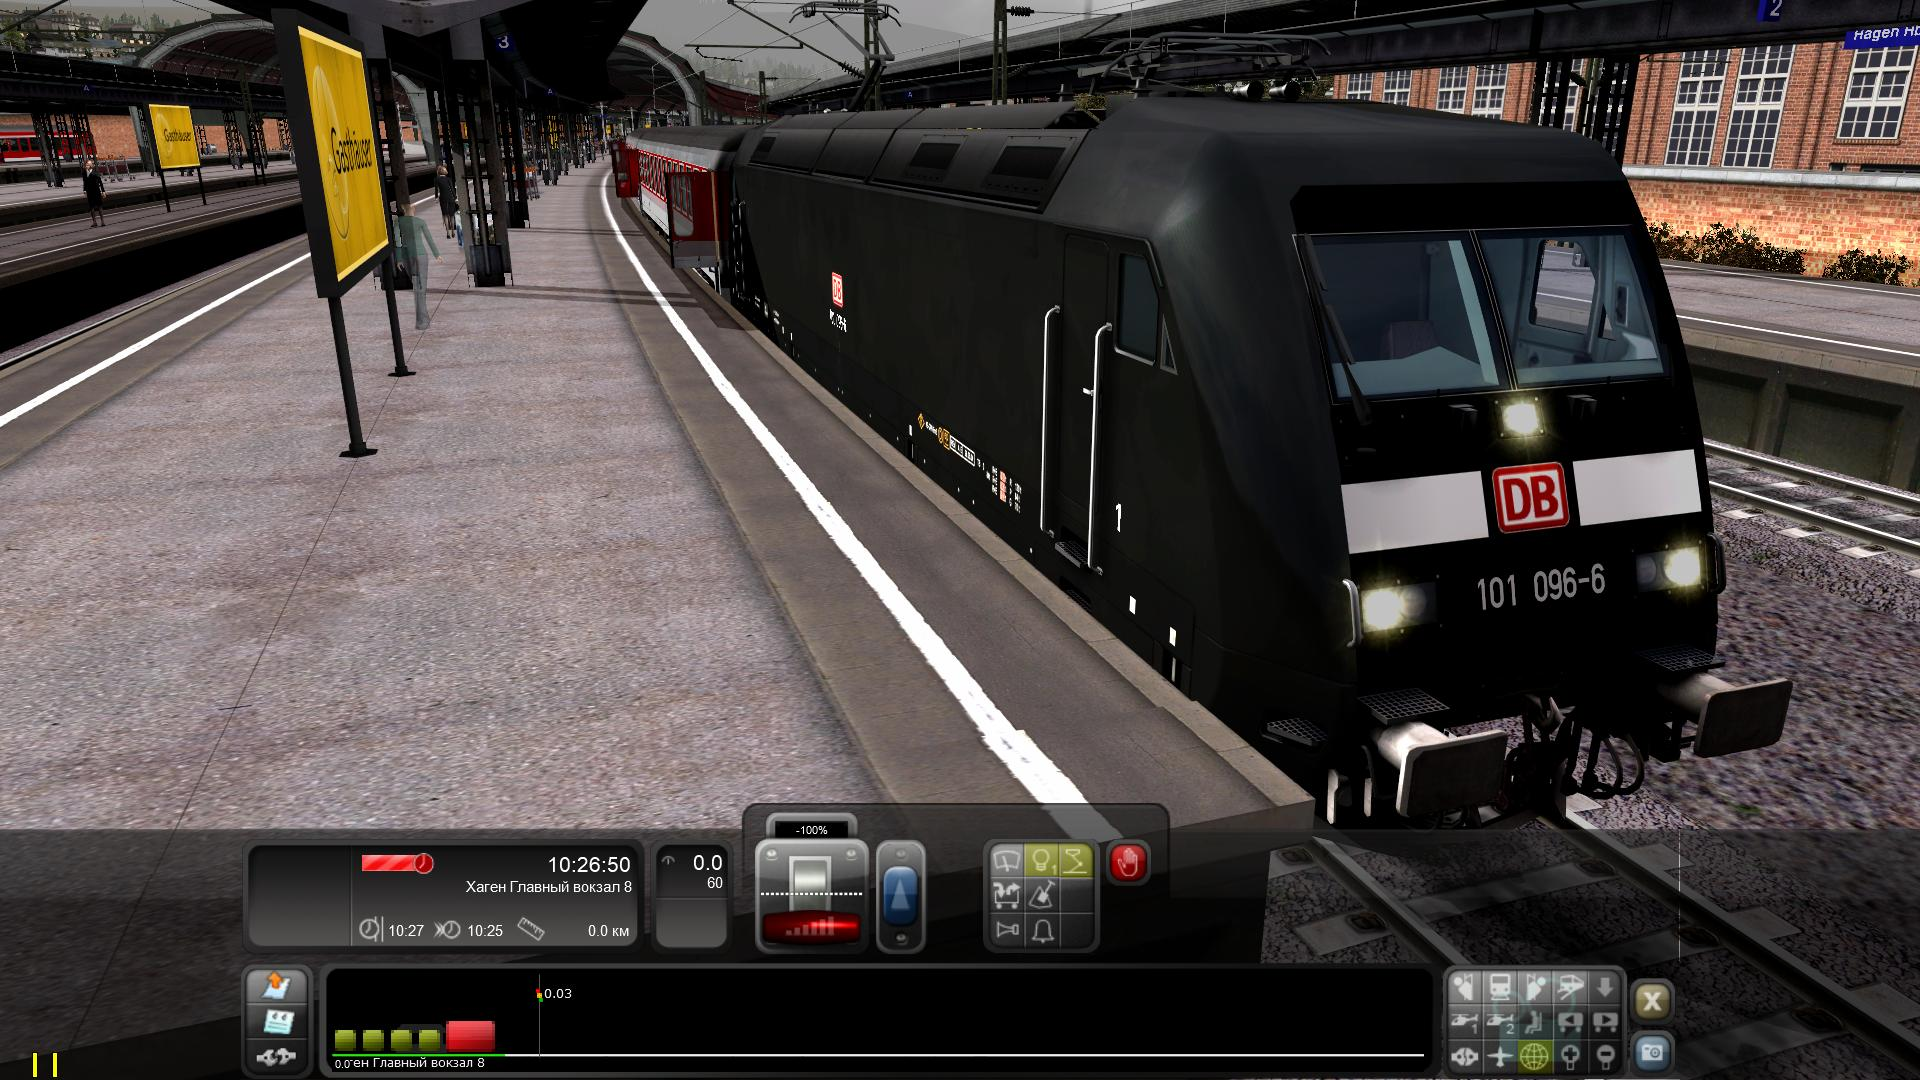 http://screenshot.ru/upload/images/2018/03/09/RailWorksProc22018-03-0919-36-27-8627573.jpg